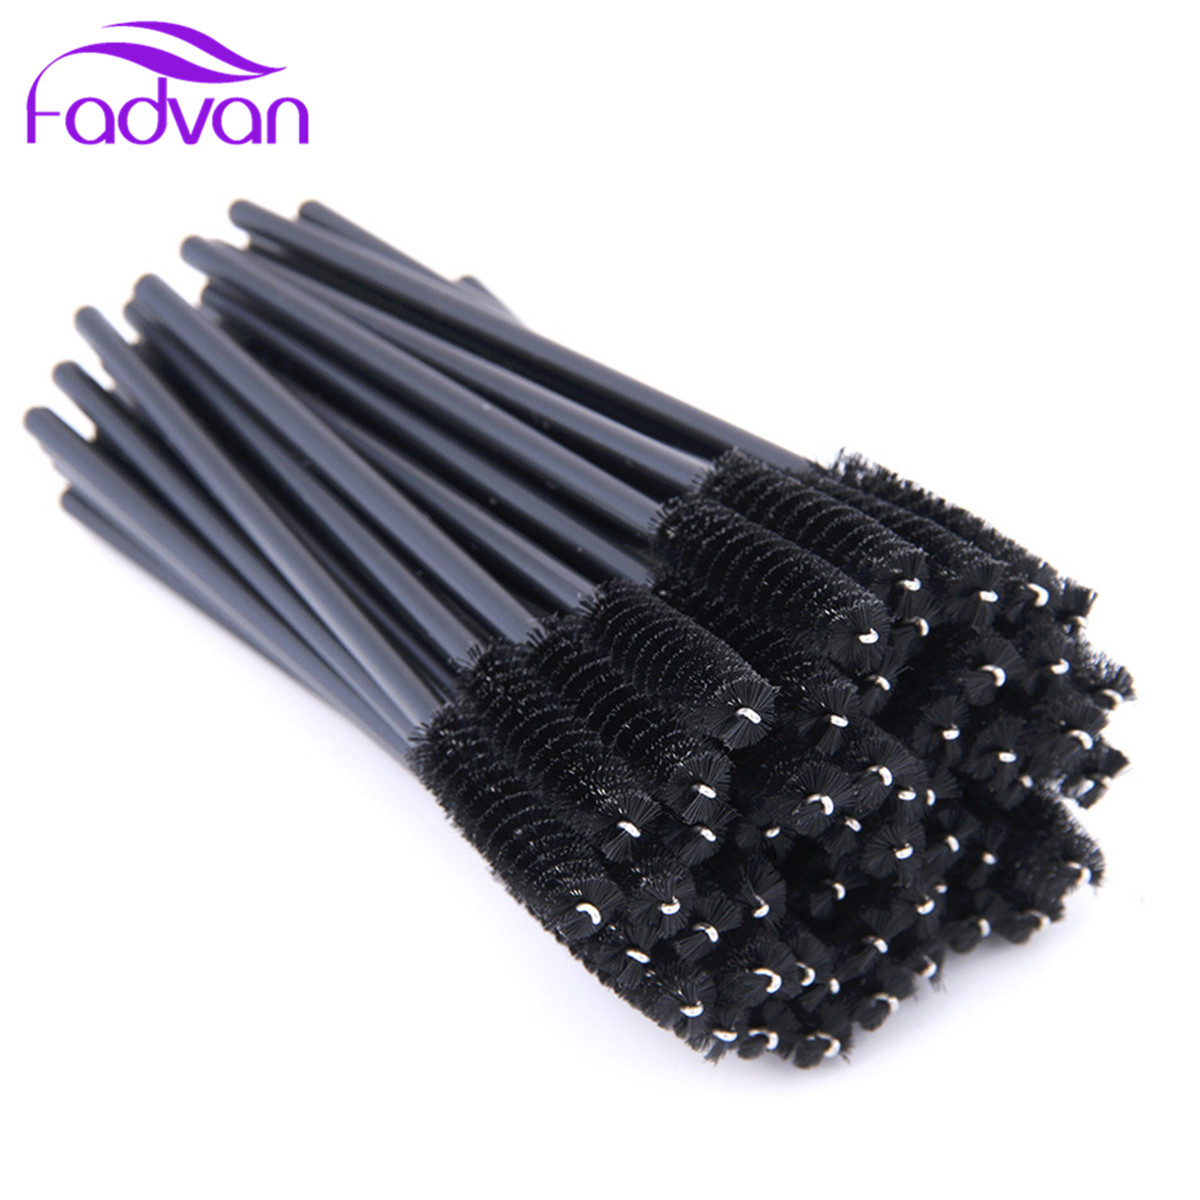 250 pcs set mascara wands applicator spoolers eye lashes for Mascara with comb wand